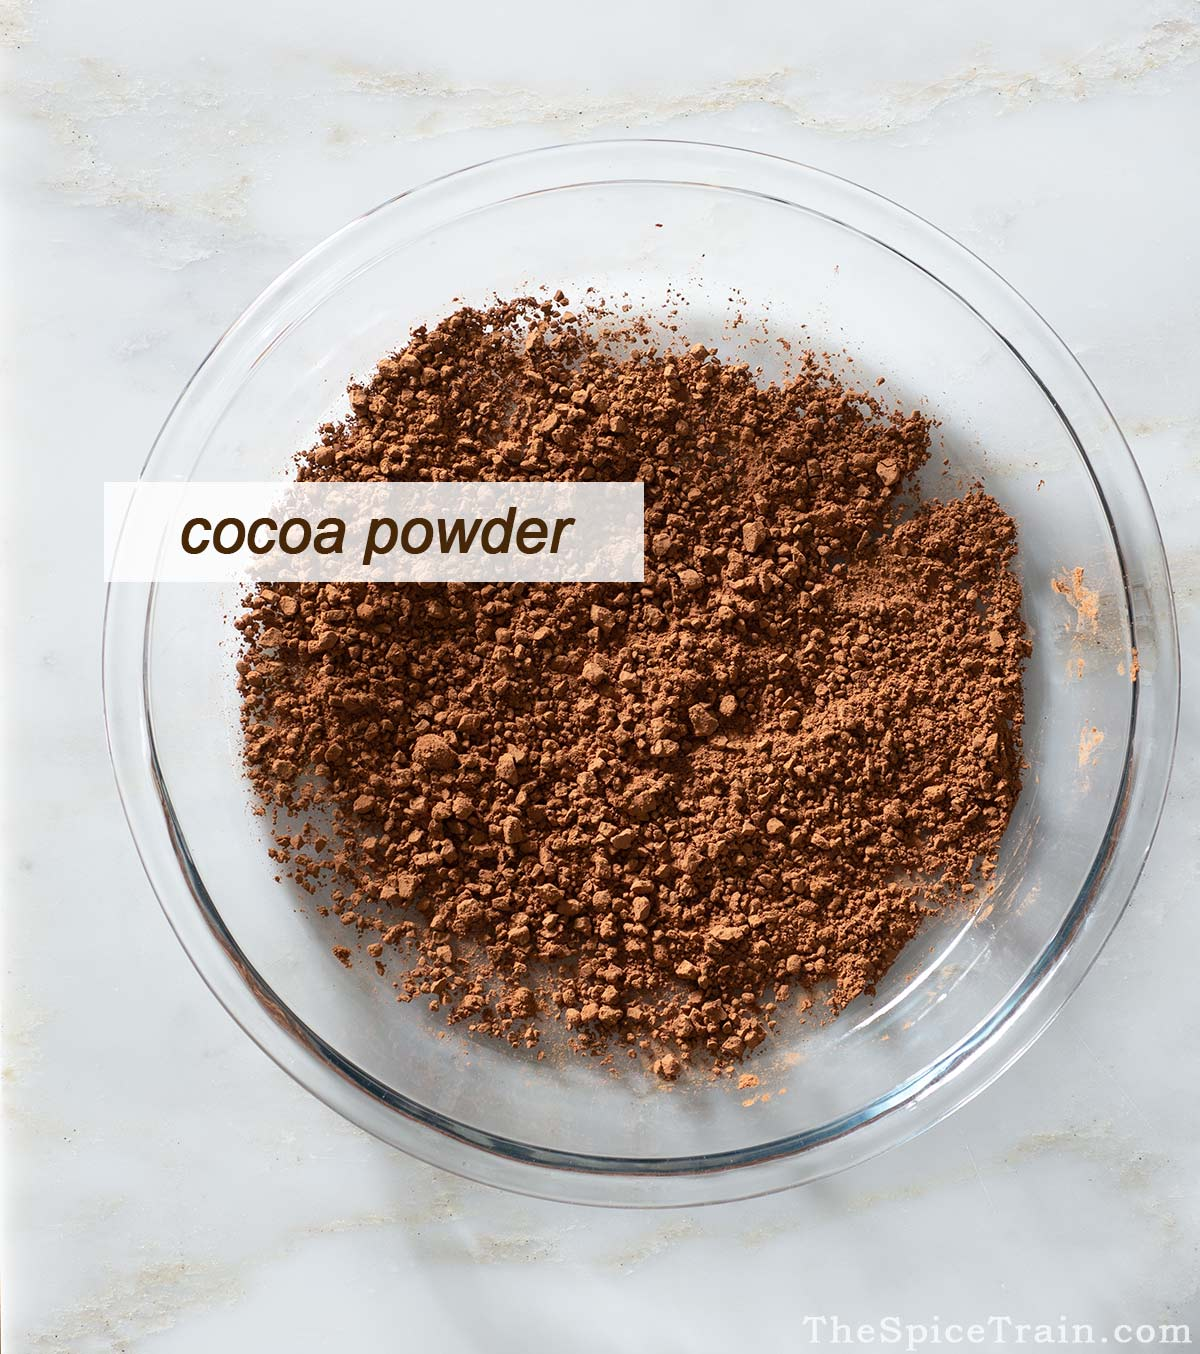 Cocoa powder in a glass pie dish.